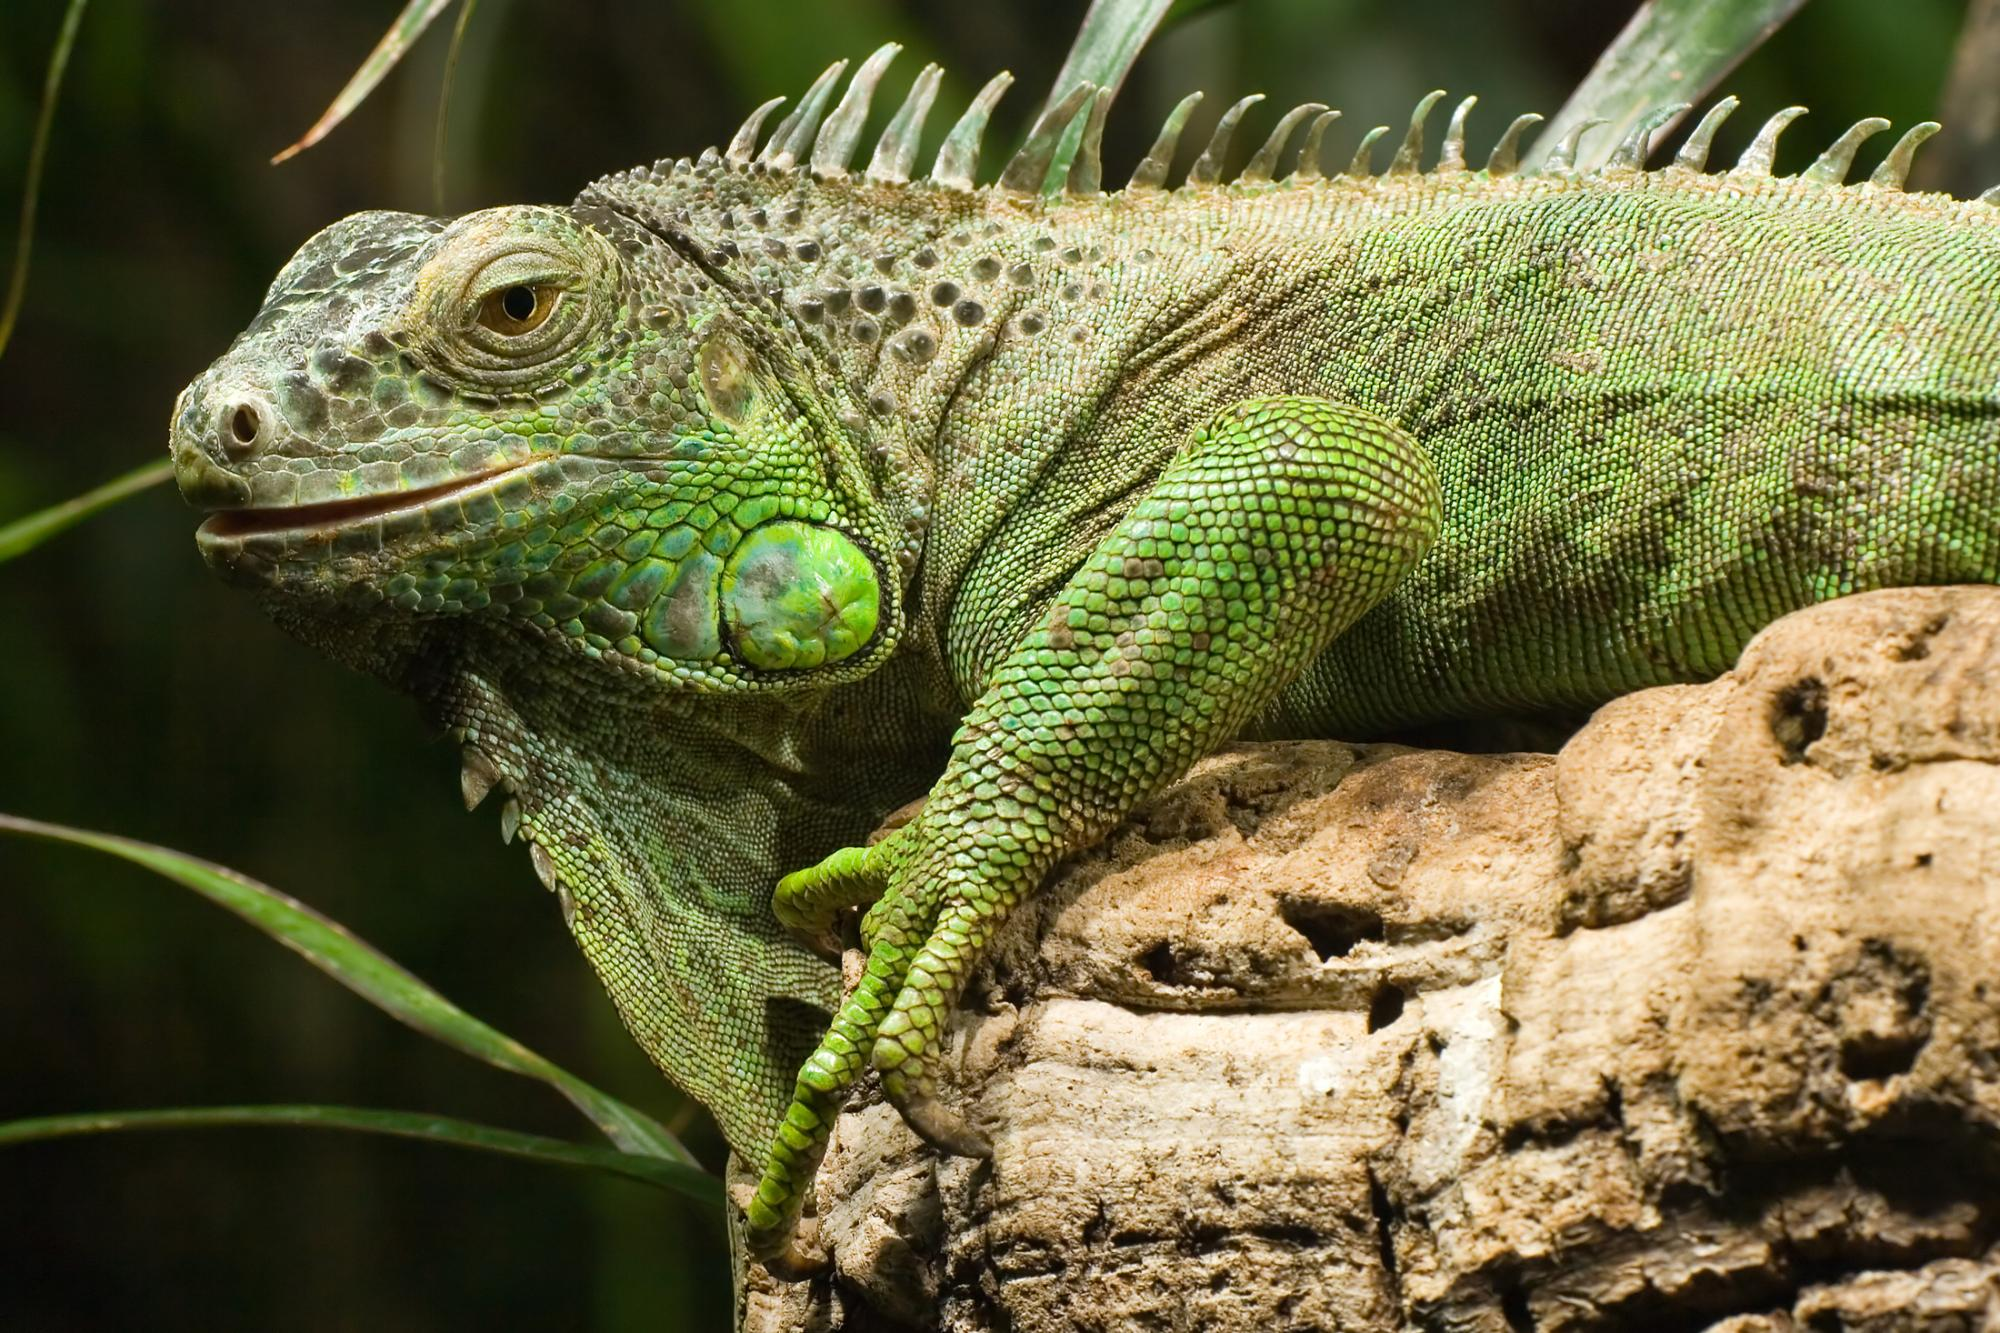 Iguanians evolved much more recently than previously thought, the new study showed.